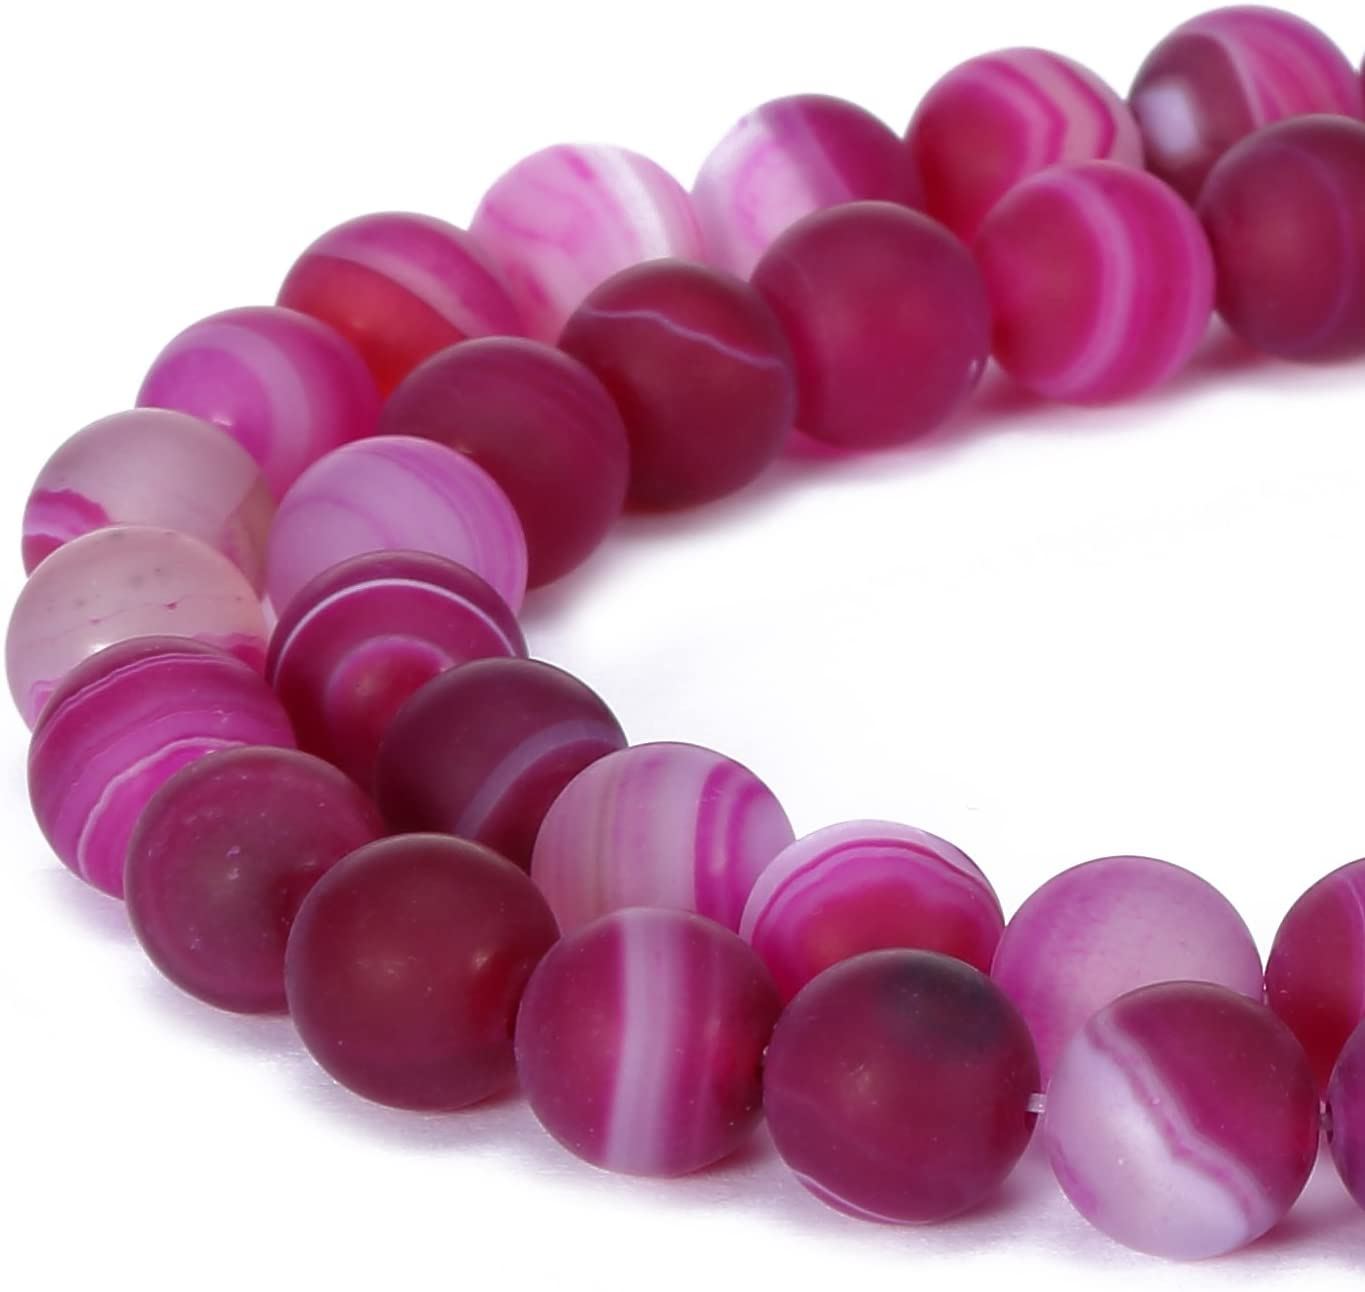 BRCbeads Stripe Agate Natural Gemstone Loose Beads 8mm Matte Round Crystal Energy Stone Healing Power for Jewelry Making- Fushia